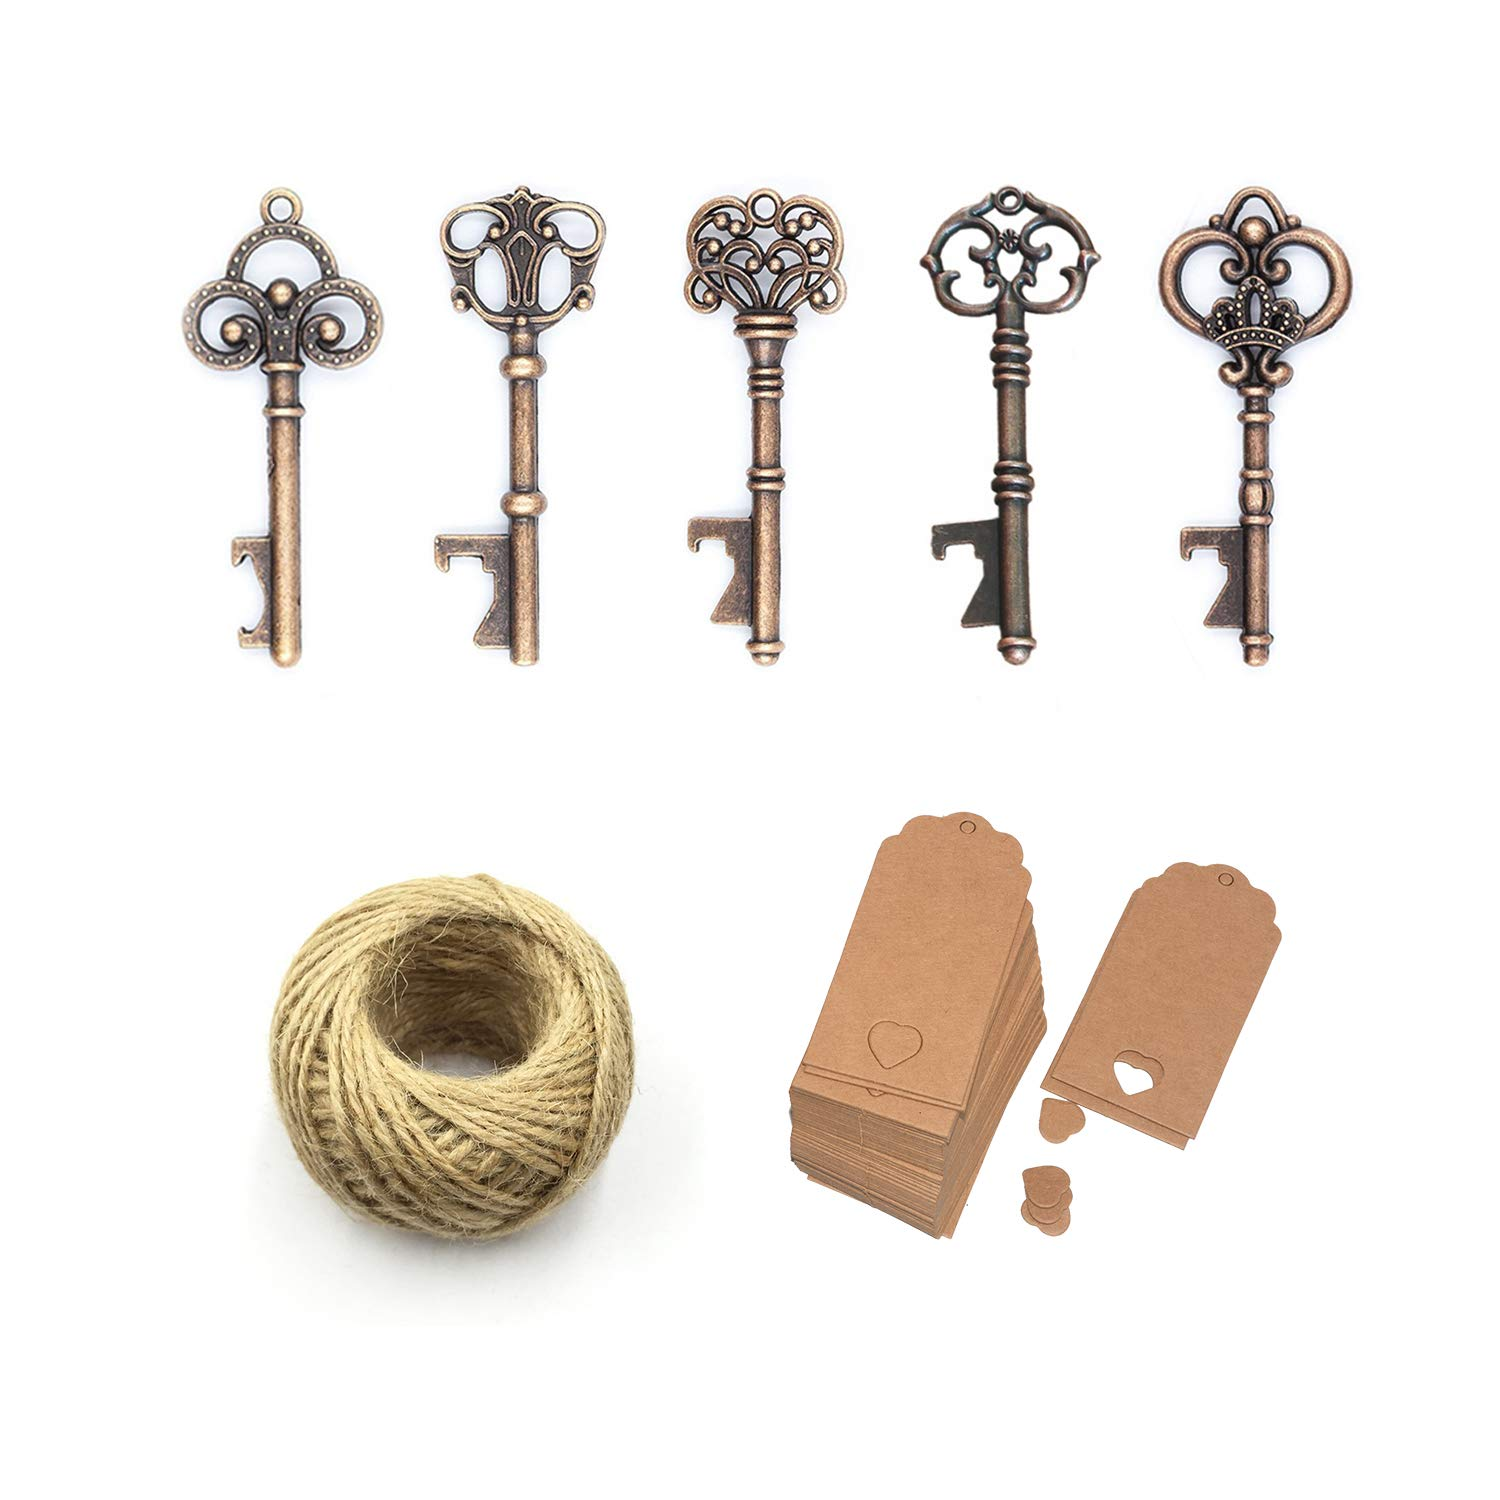 Yansanido Pack of 100 Skeleton Key Bottle Opener with Escort Tag Card and Twine for Wedding Favors for Guests Party Favors (100pcs mixed 5 styles) by Yansanido (Image #4)